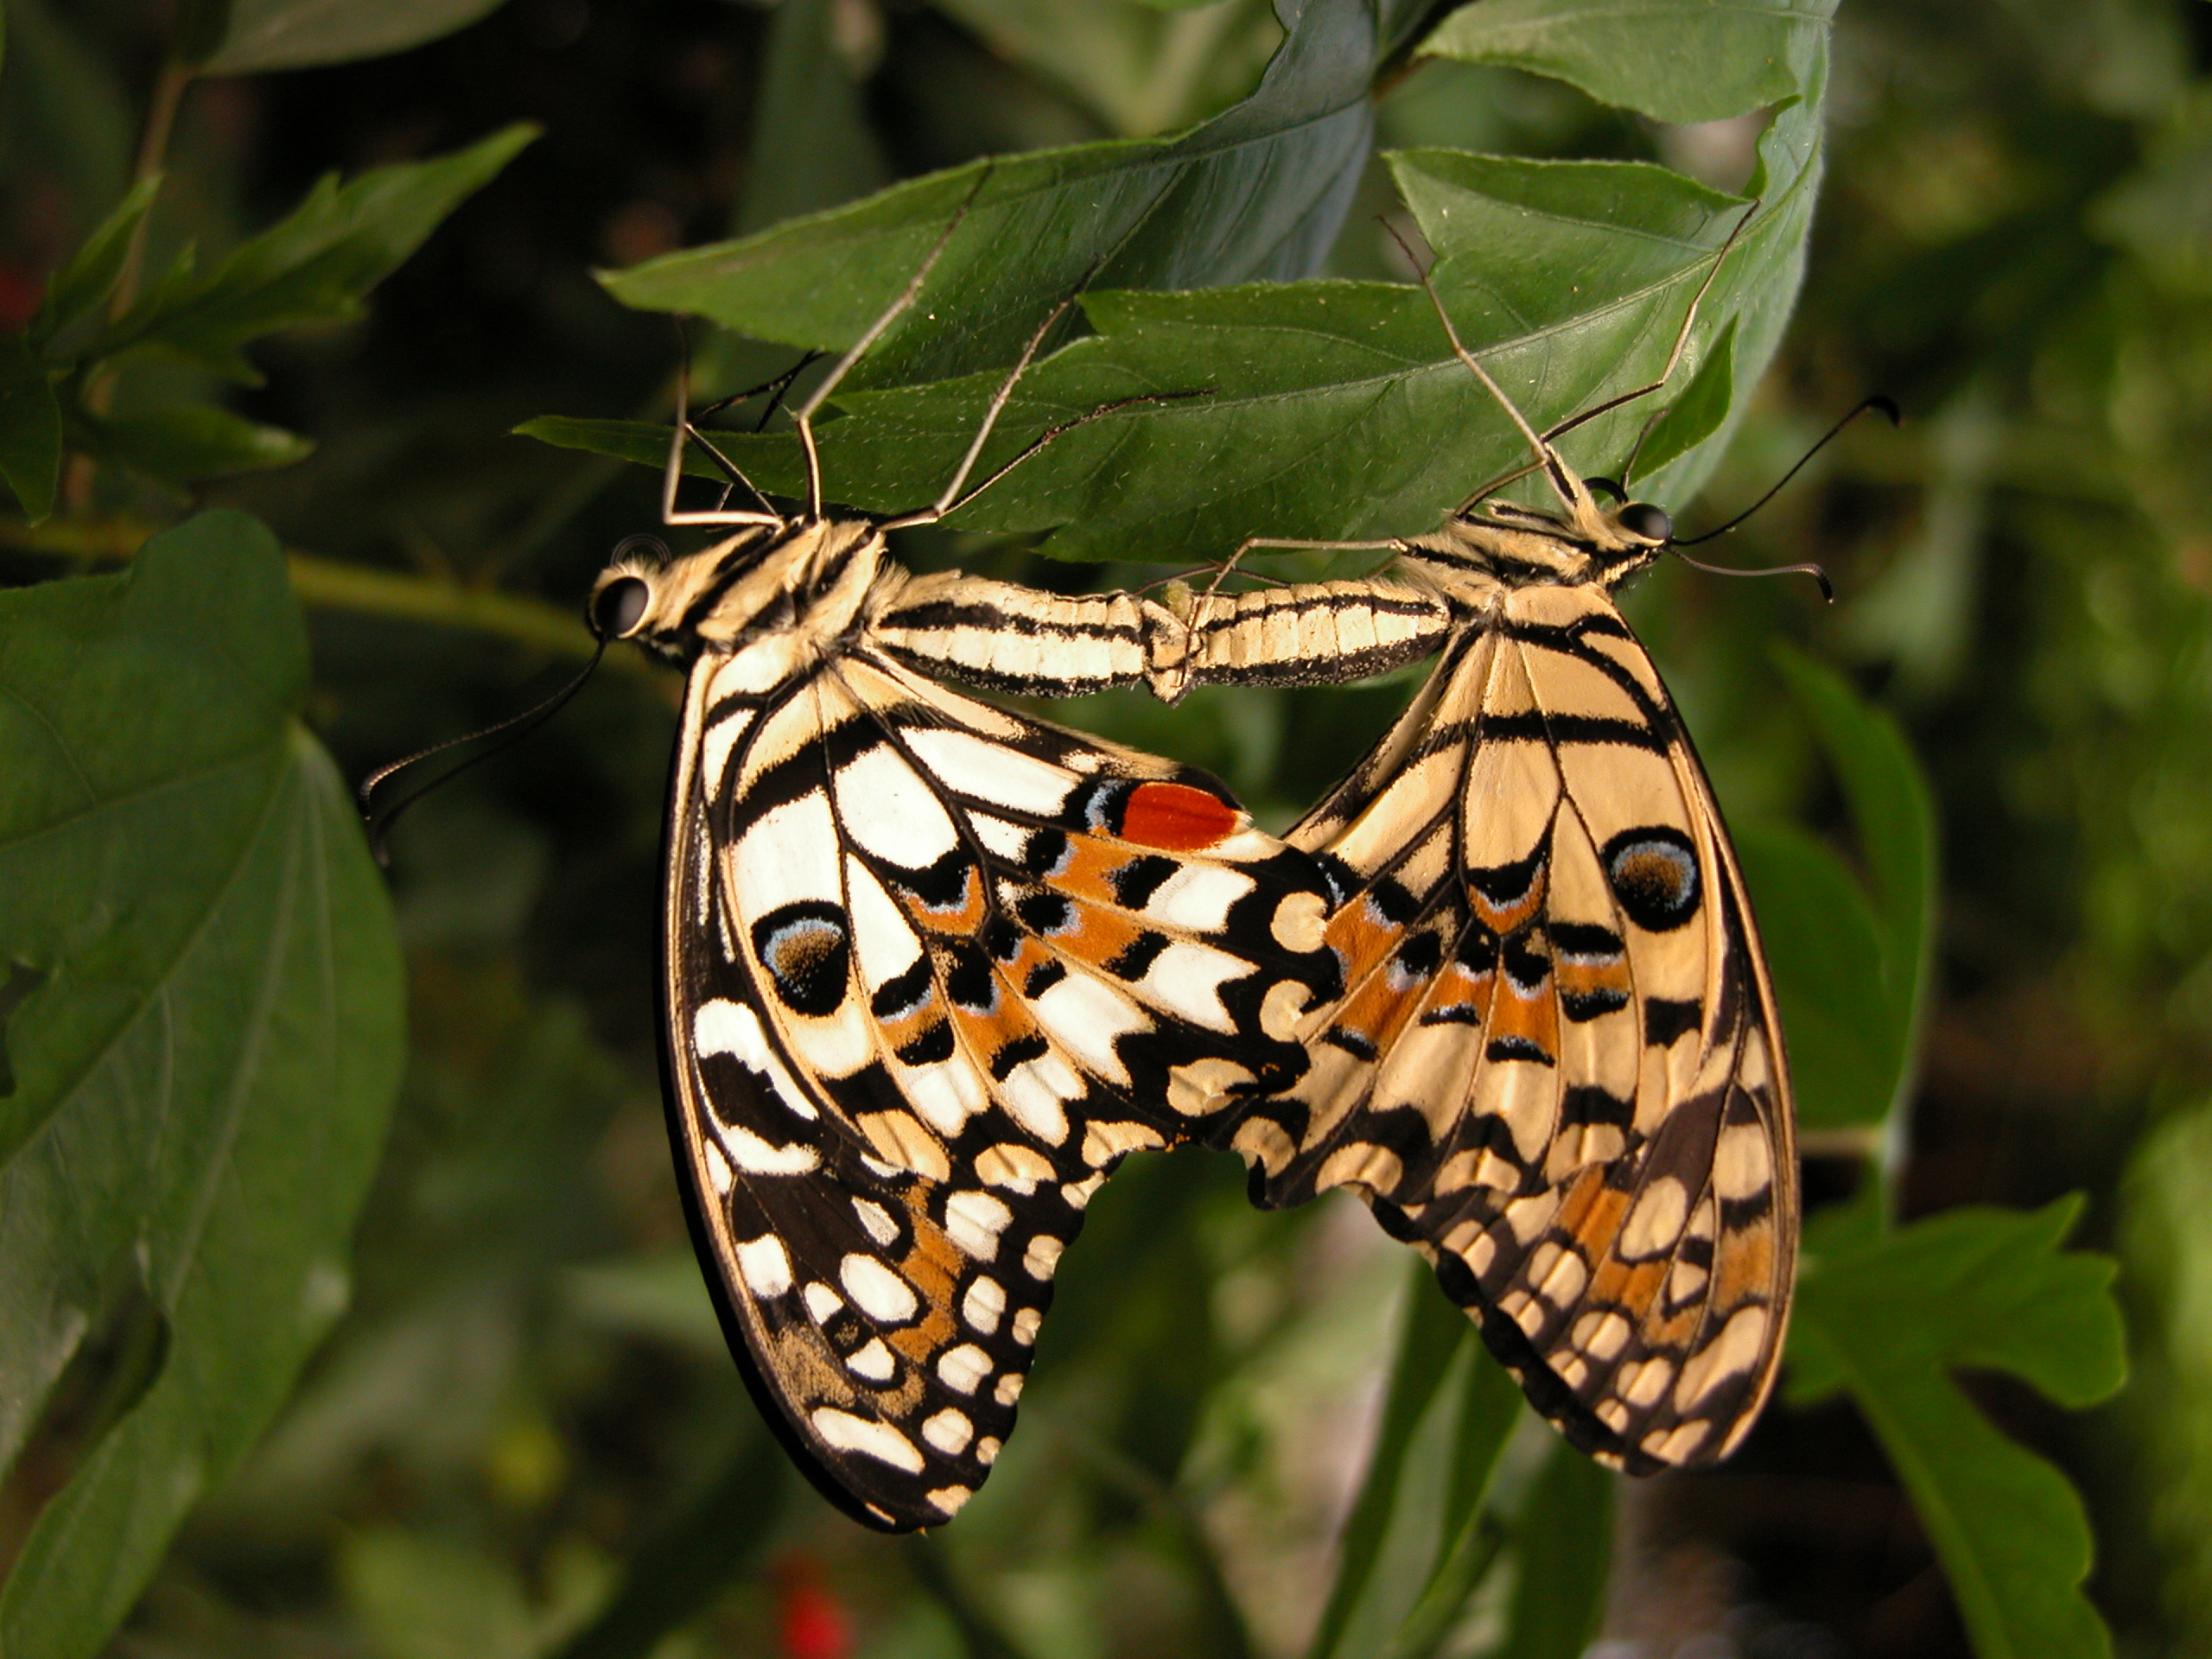 image.php?image=b12nature_animals_insect